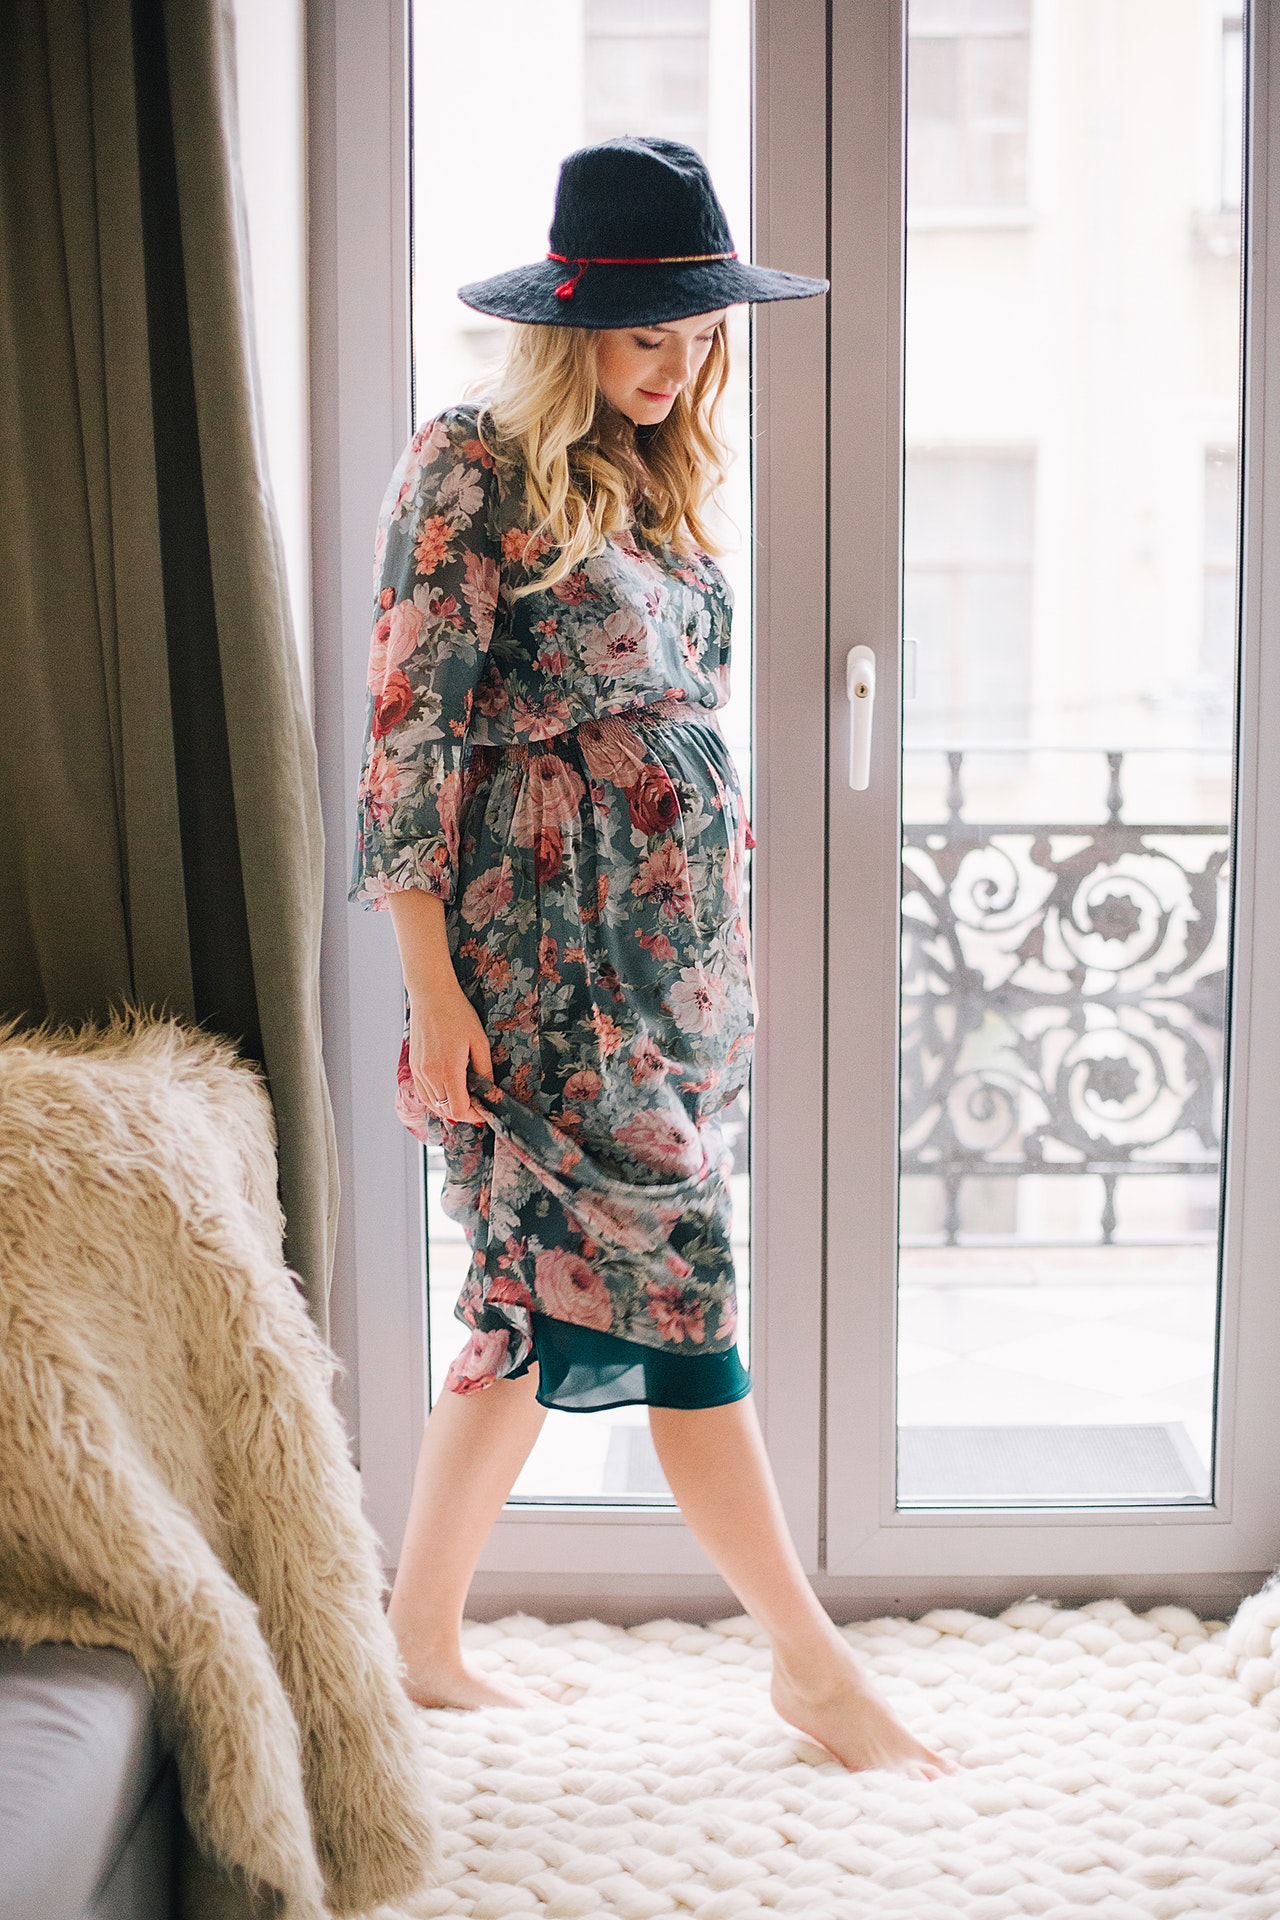 Woman in floral dress in bright room